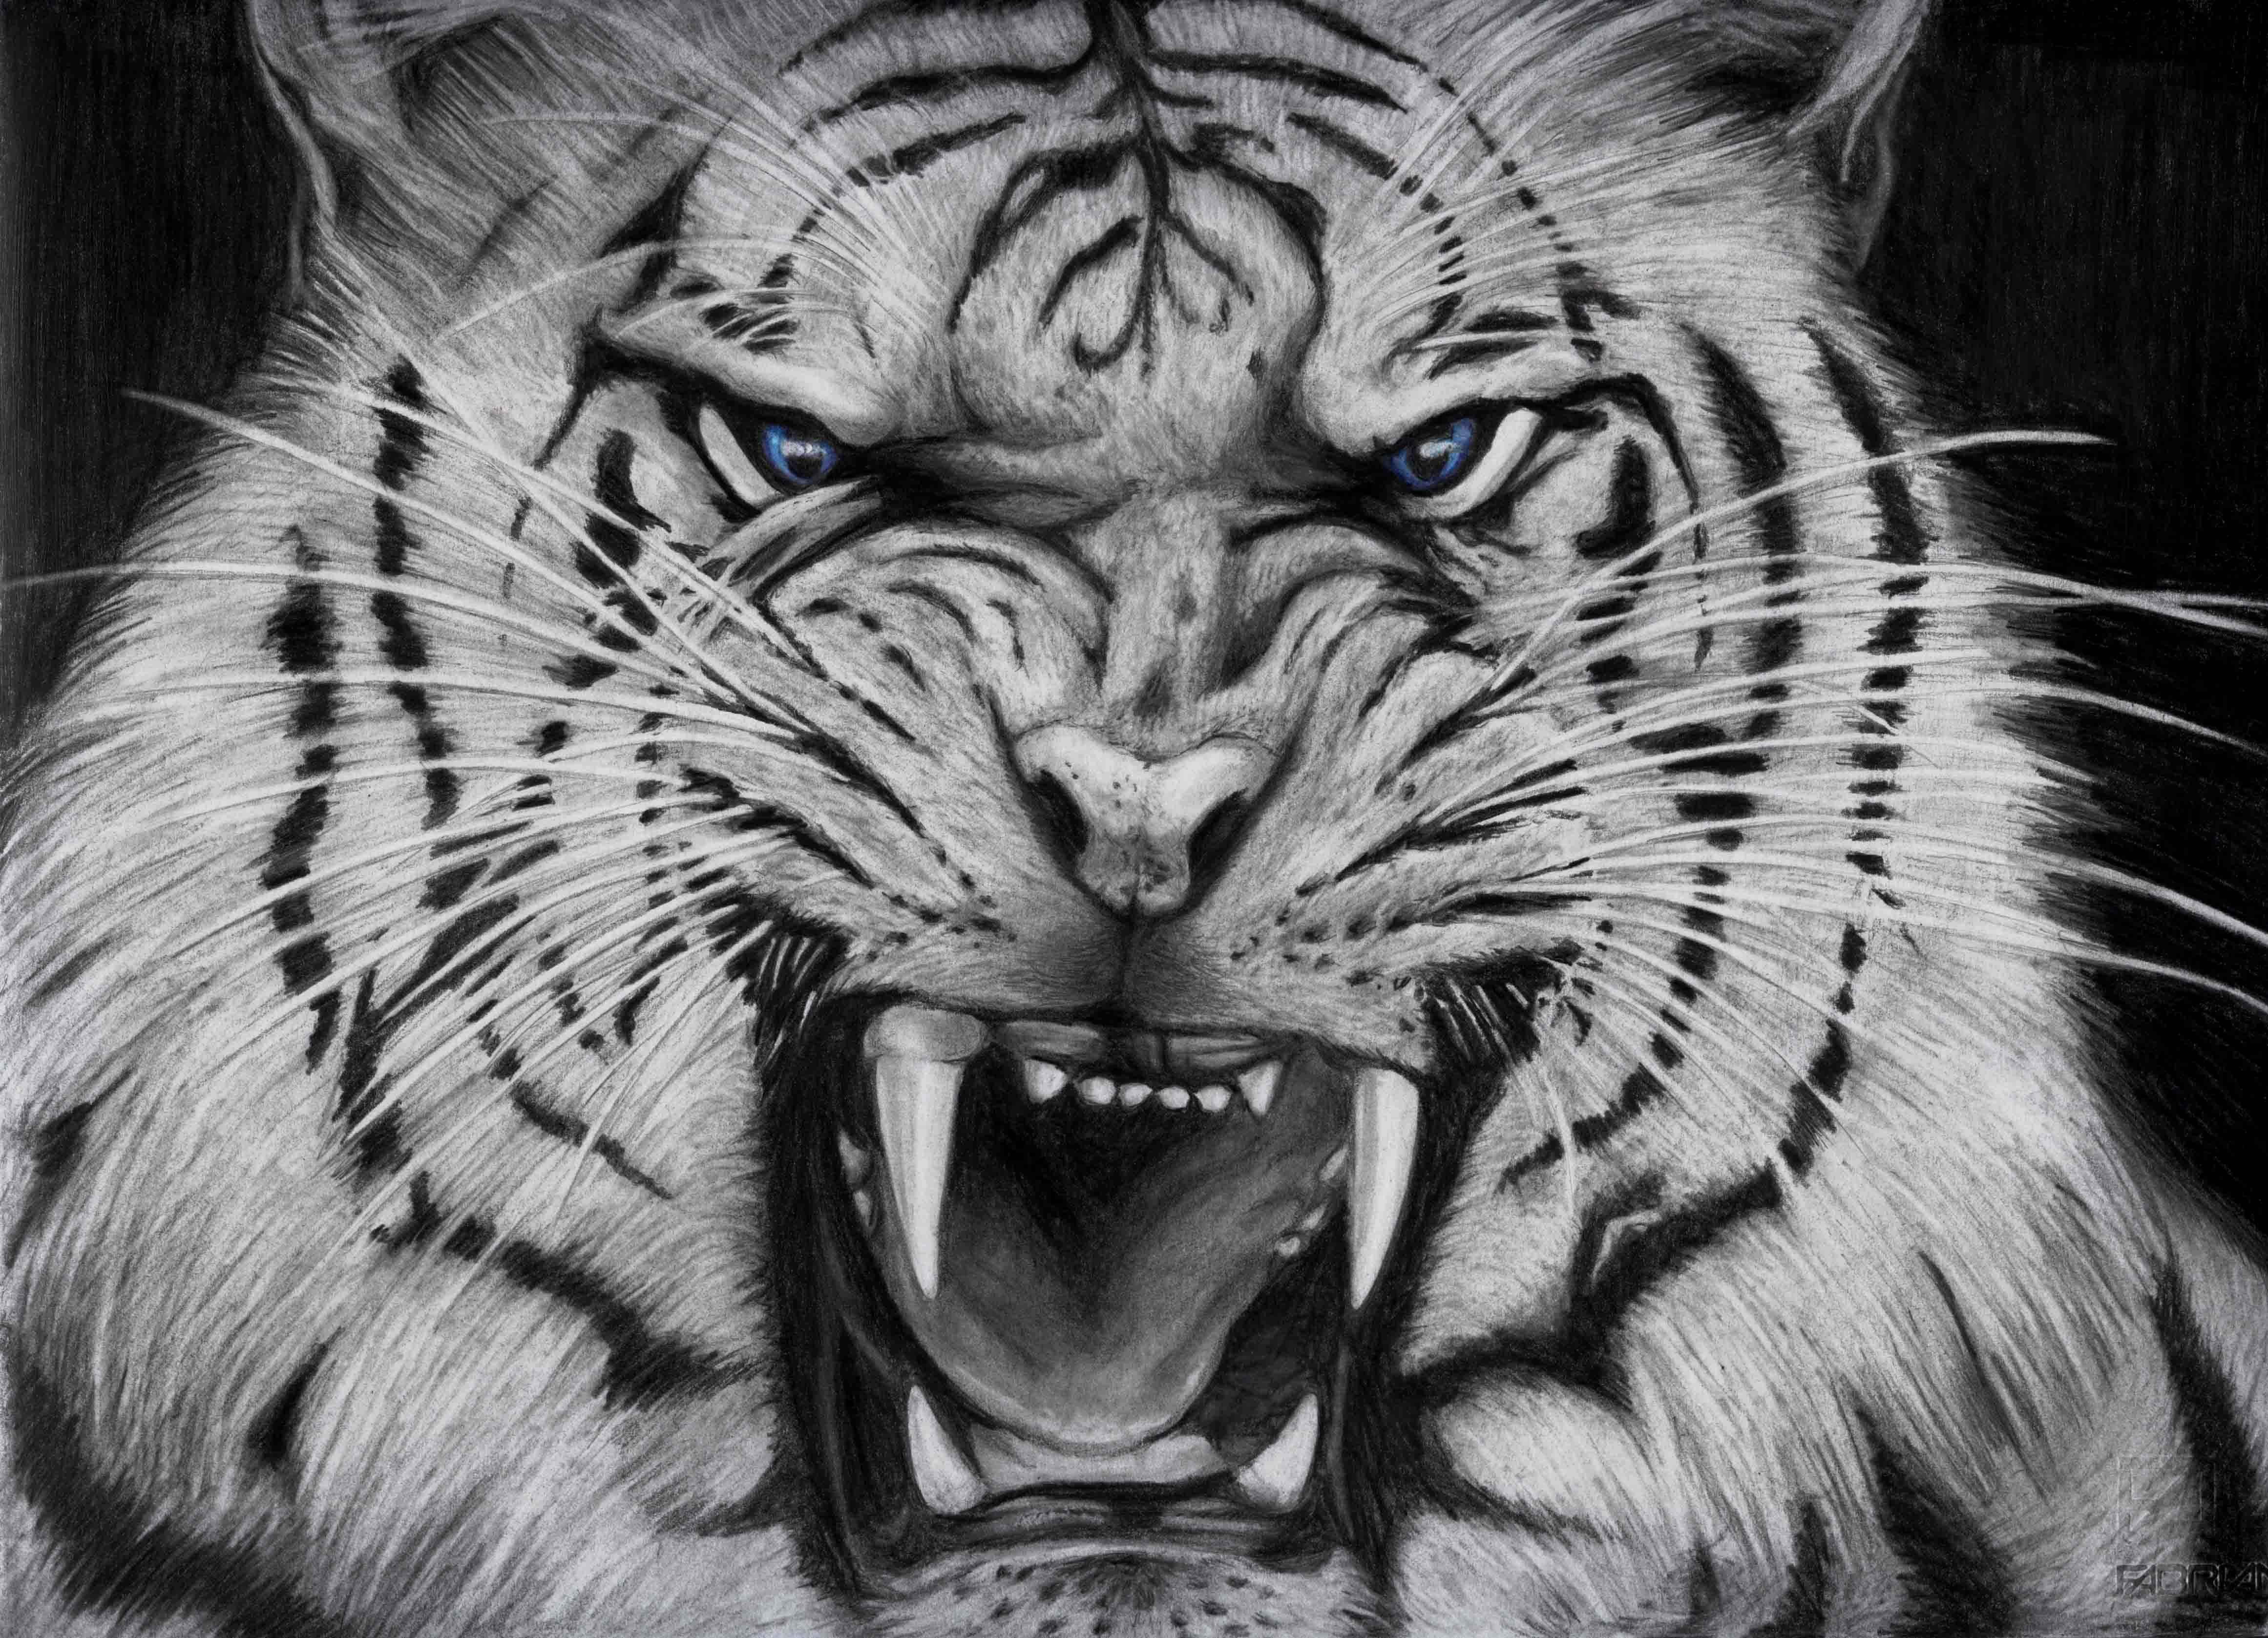 Black And White Tiger Wallpapers Top Free Black And White Tiger Backgrounds Wallpaperaccess